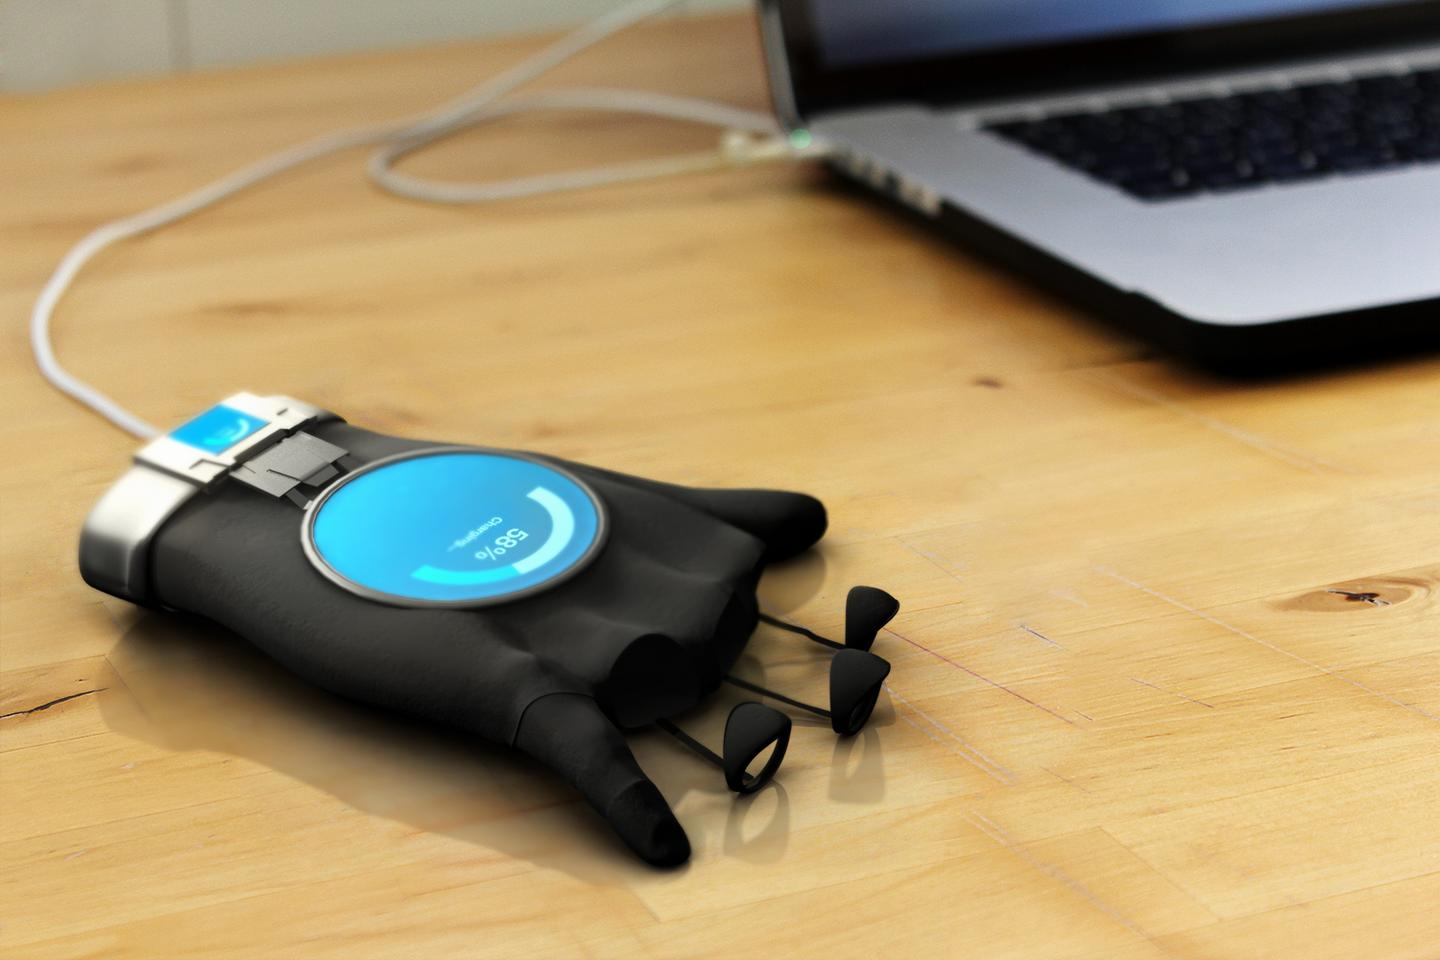 The device is still a prototype, and was created as the subject of a Masters thesis